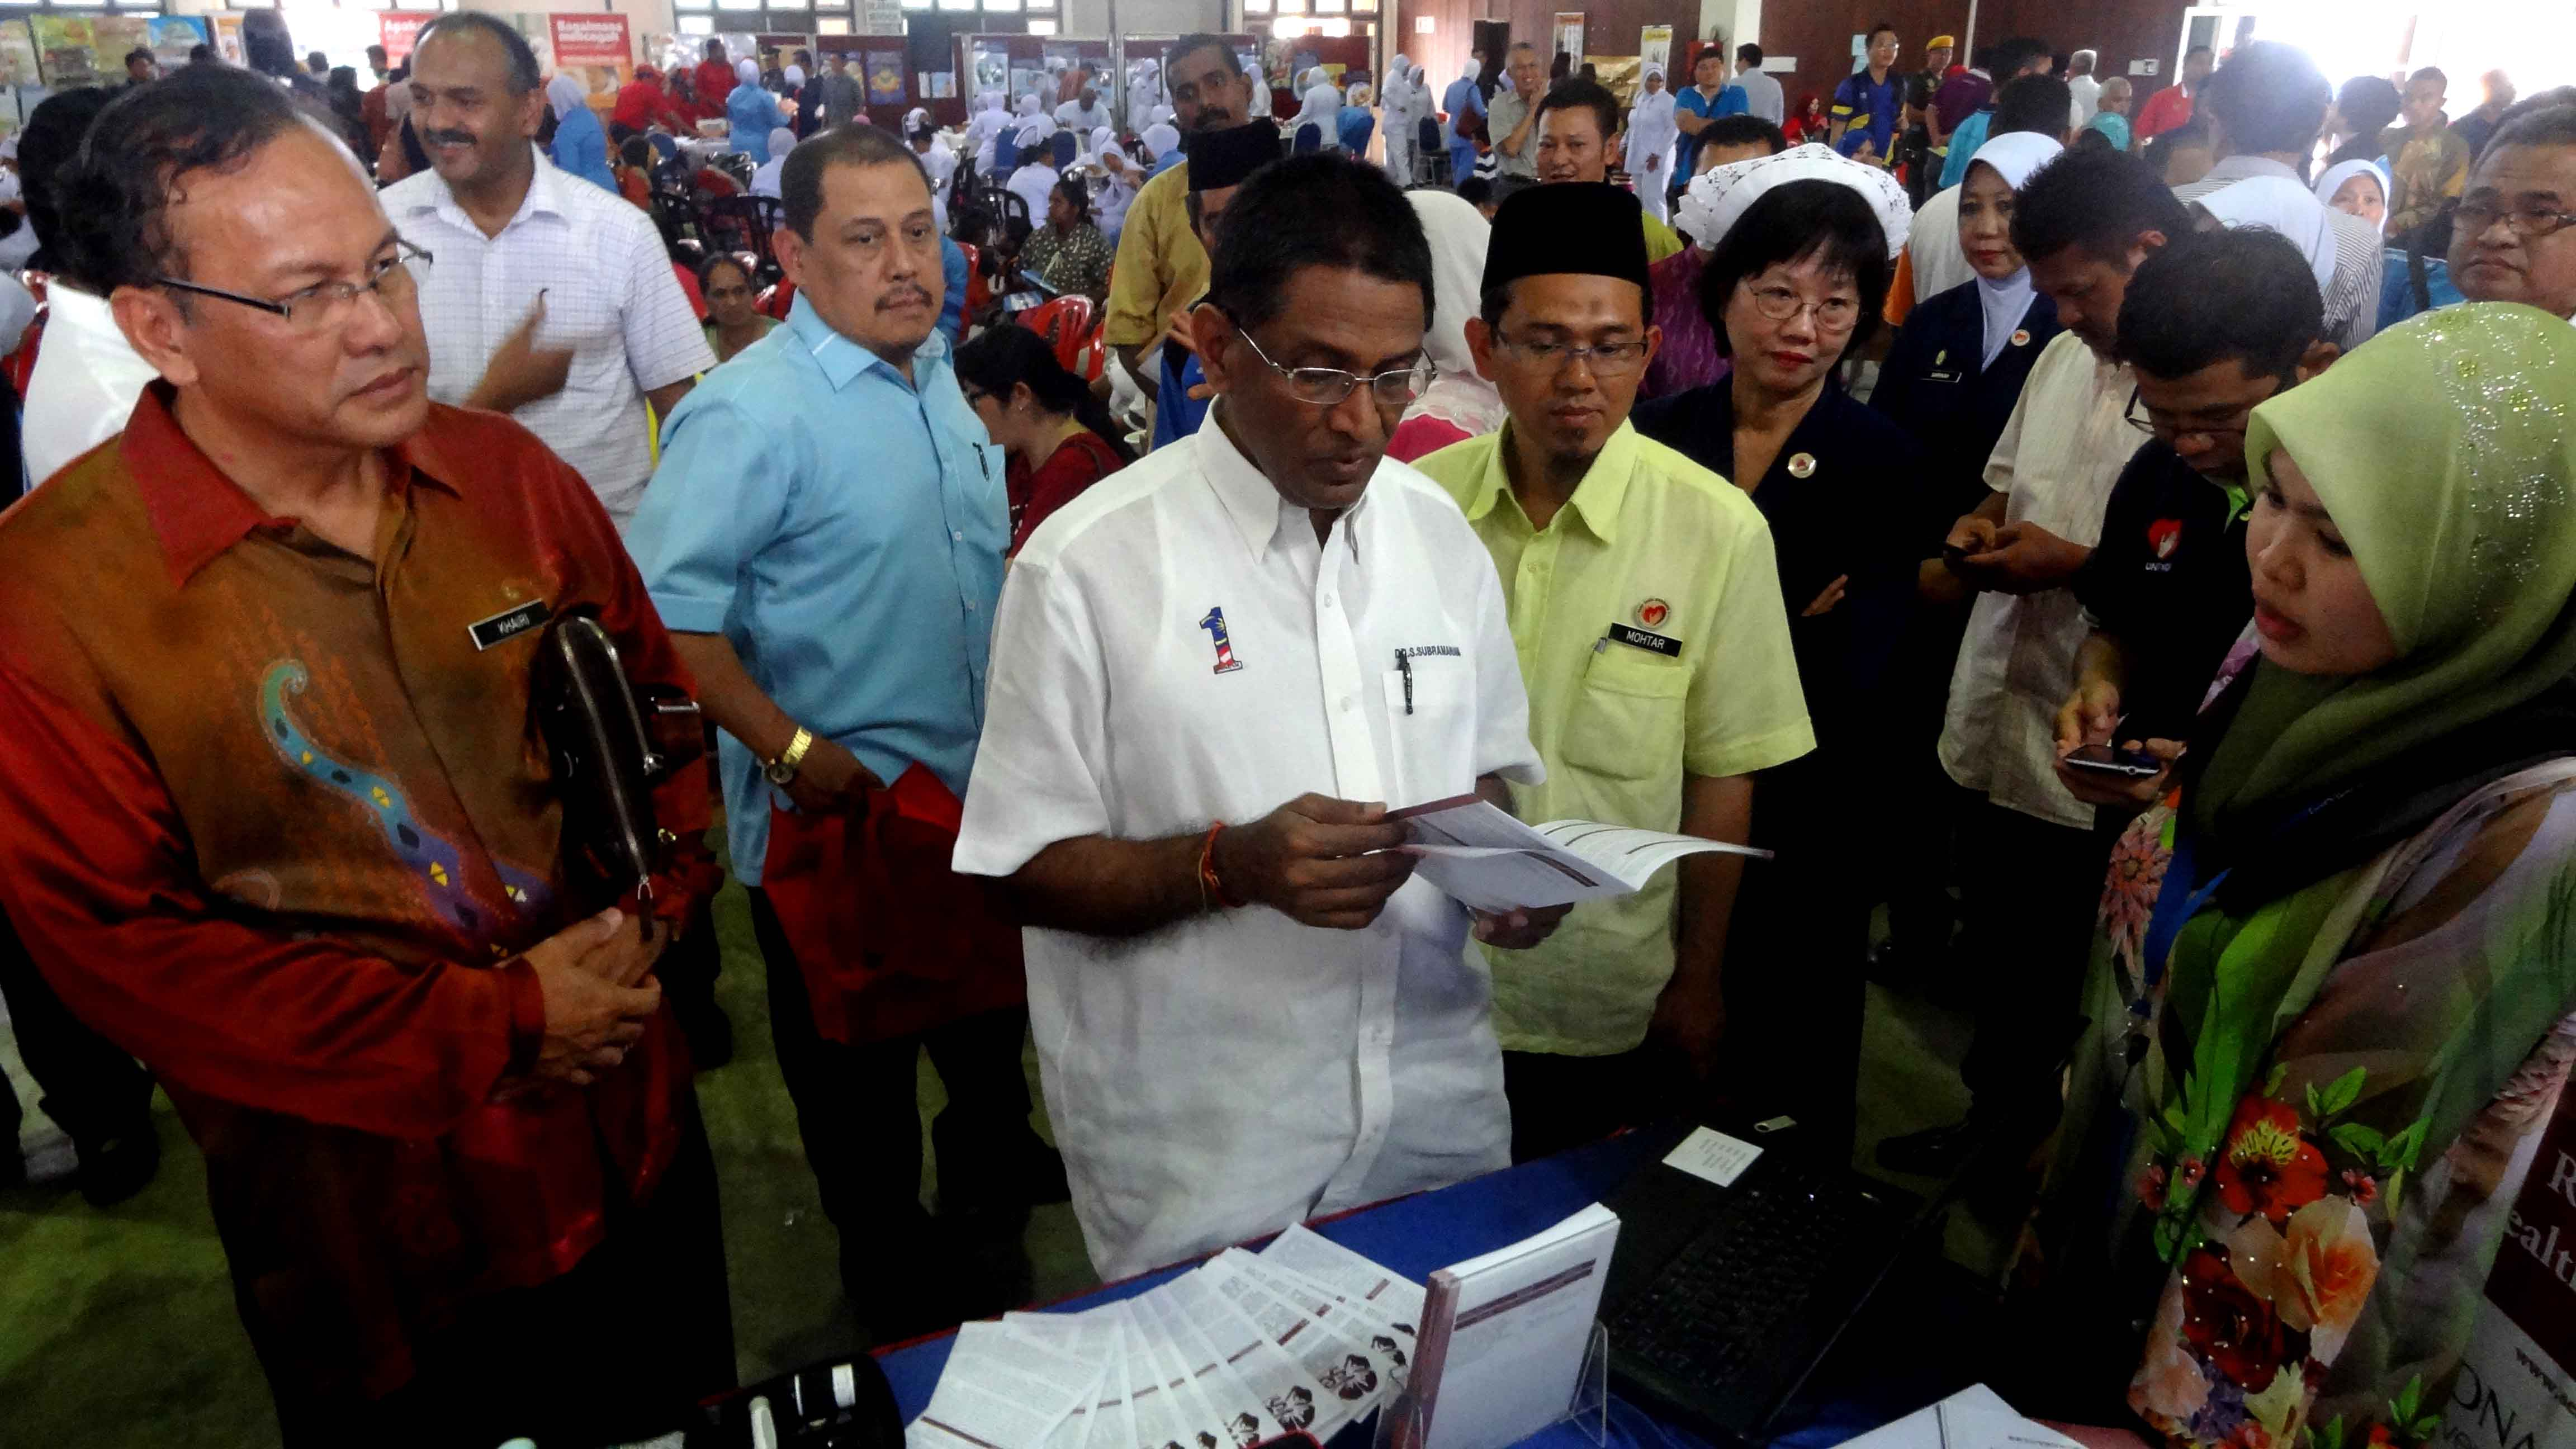 Minister of Health visited SEACO Booth